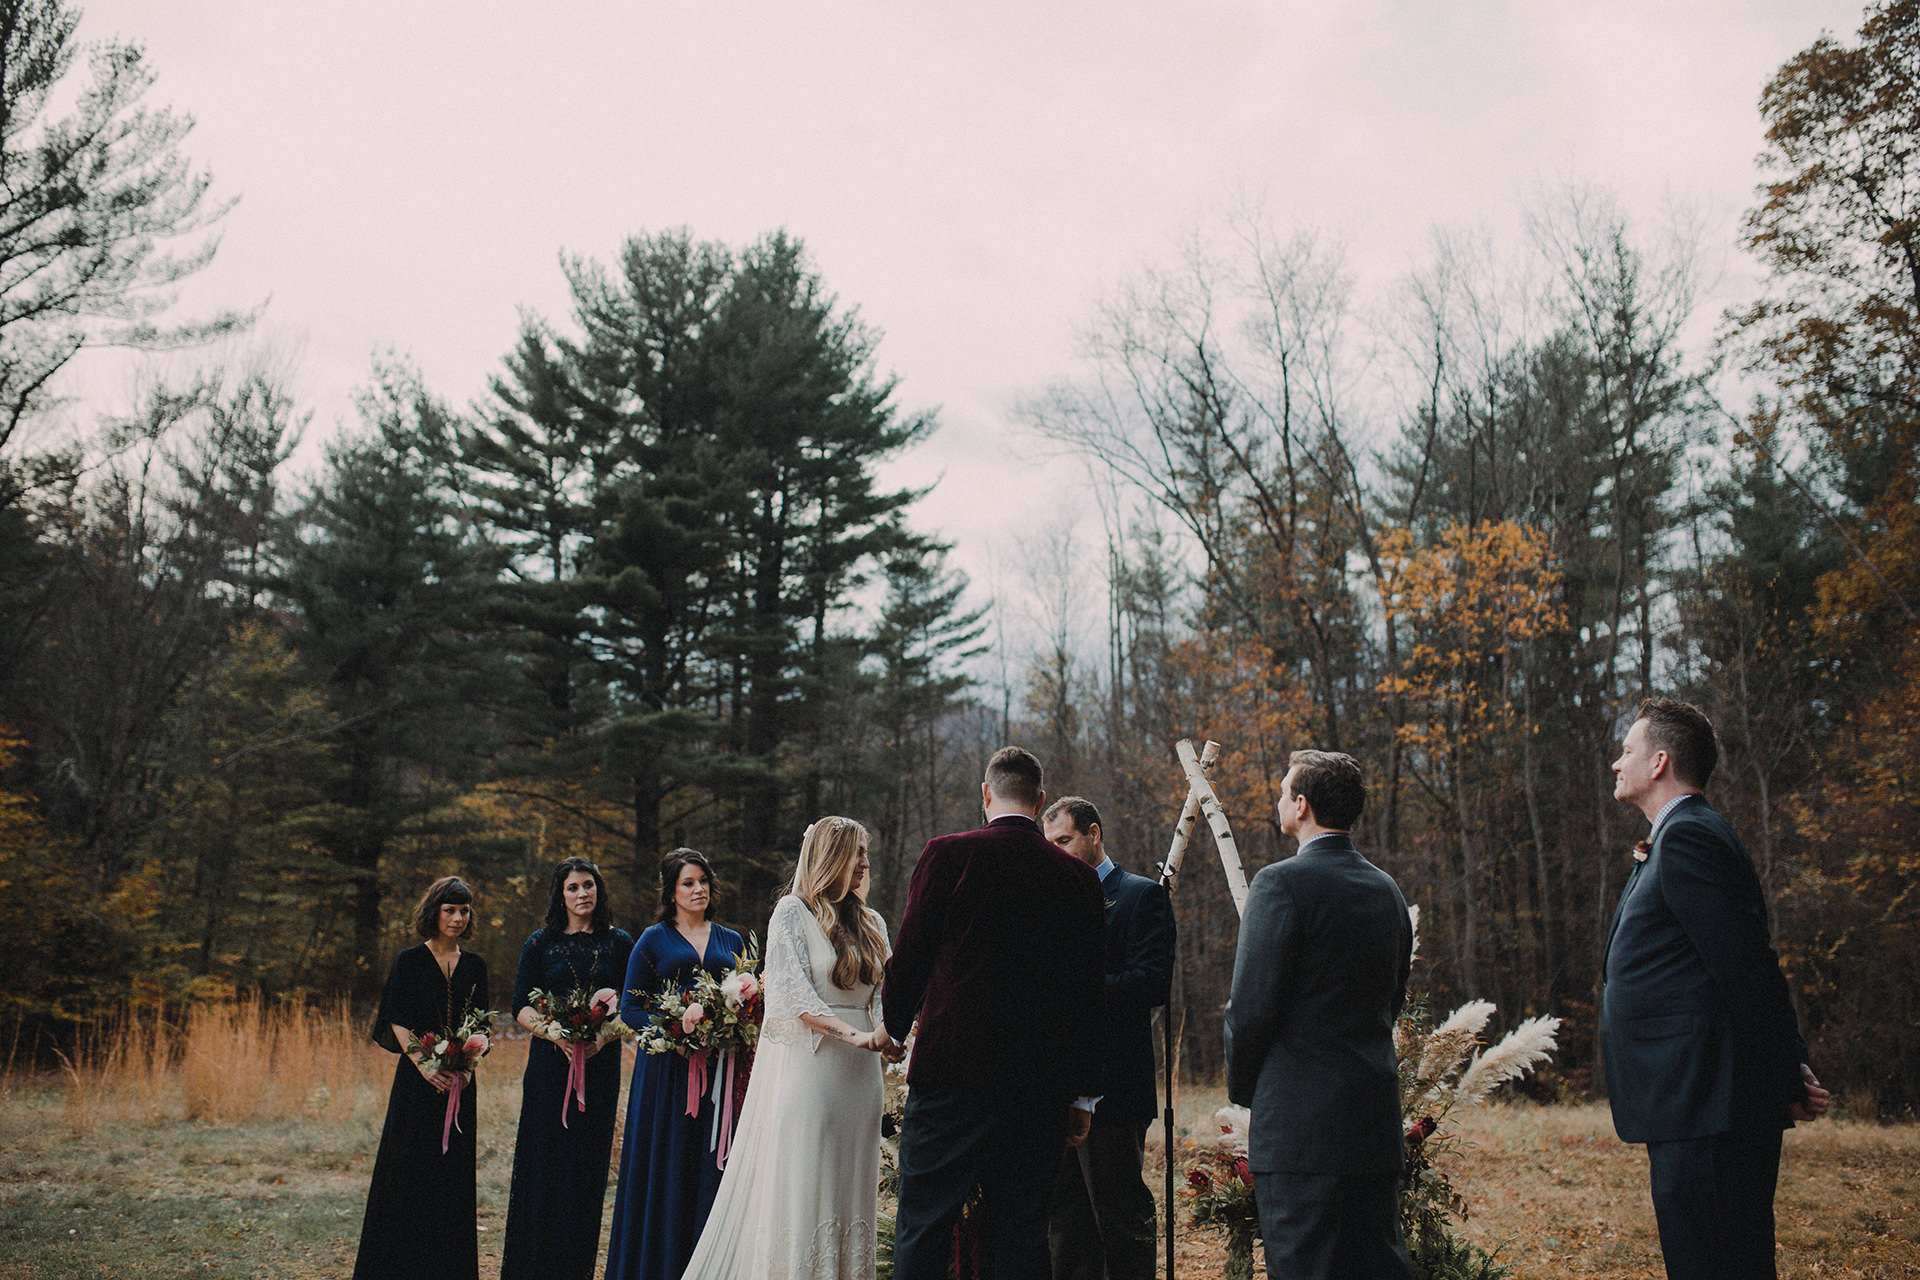 Weddind_catskills_mountain_newyjersey-195.jpg